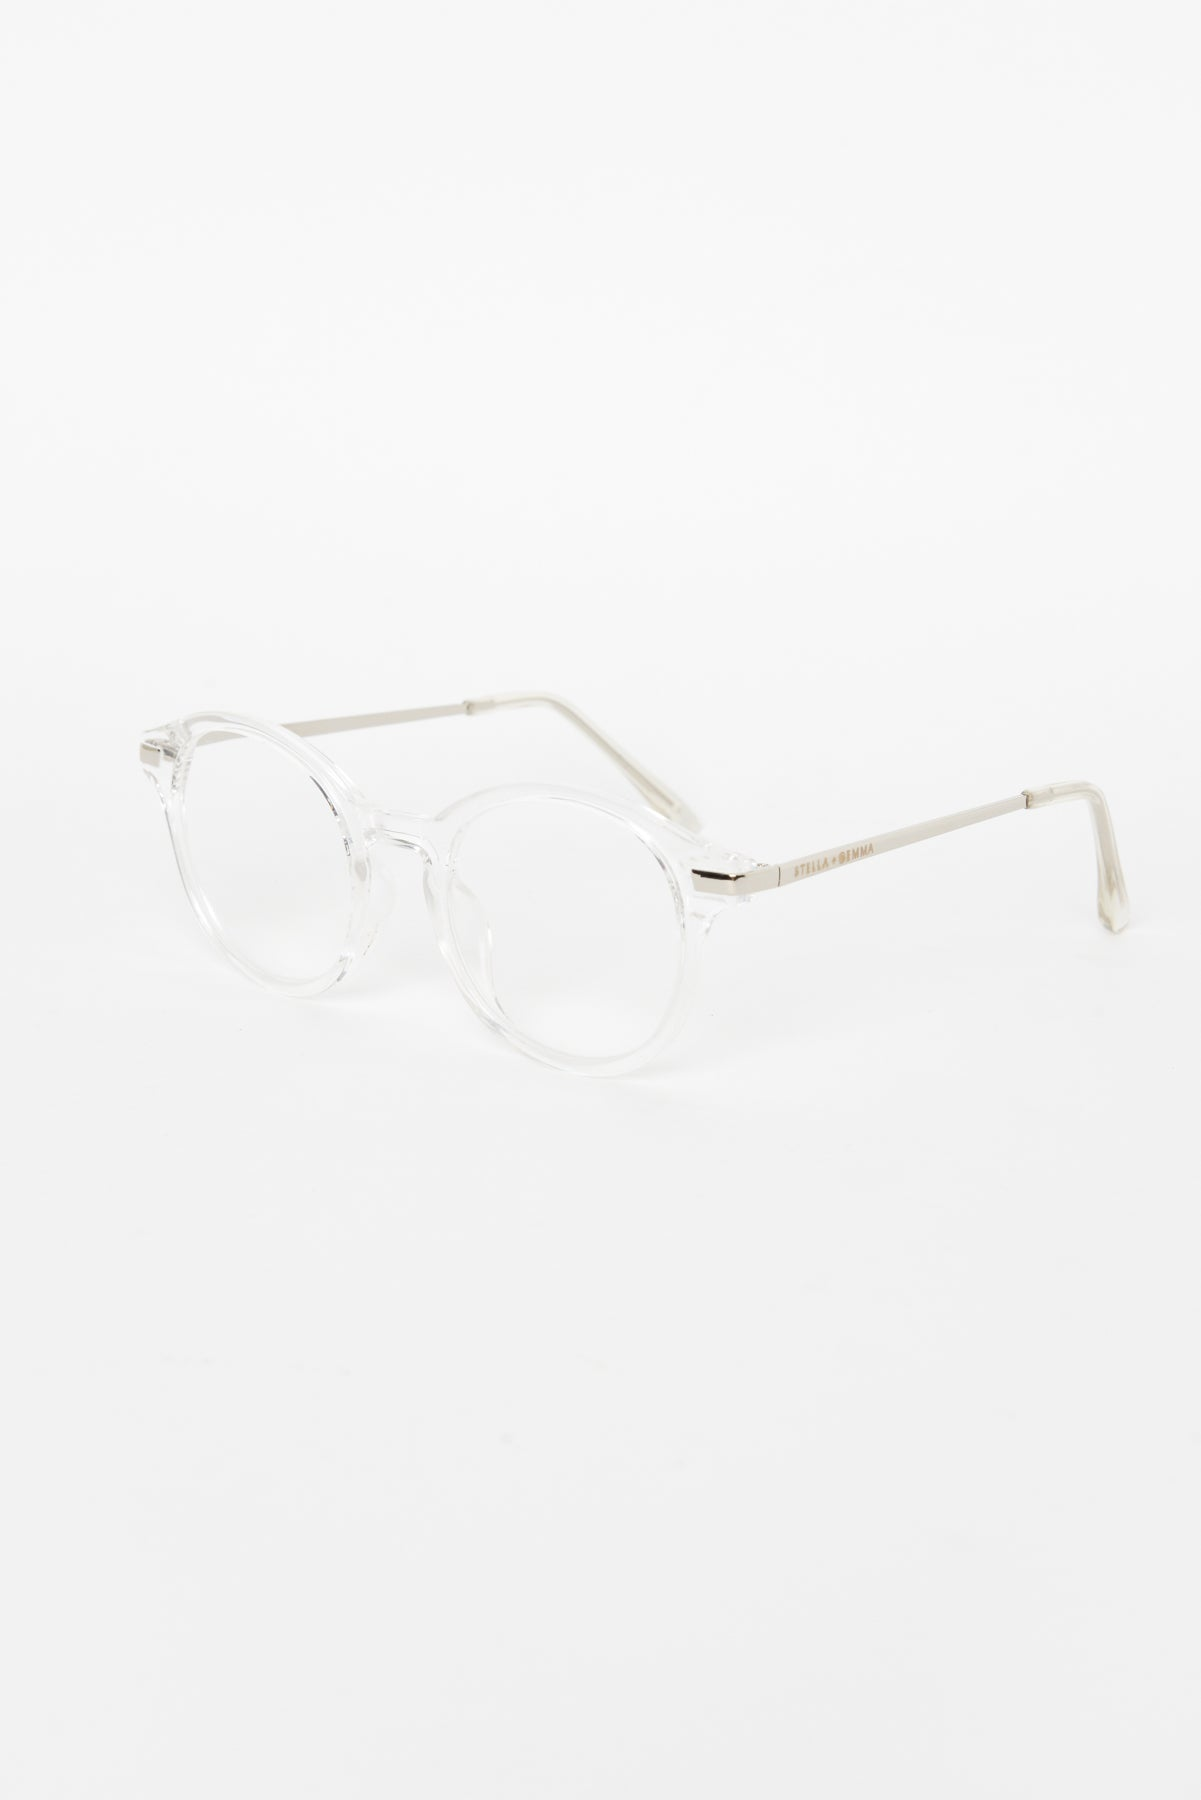 Kelly Clear Reading Glasses - Blue Bungalow